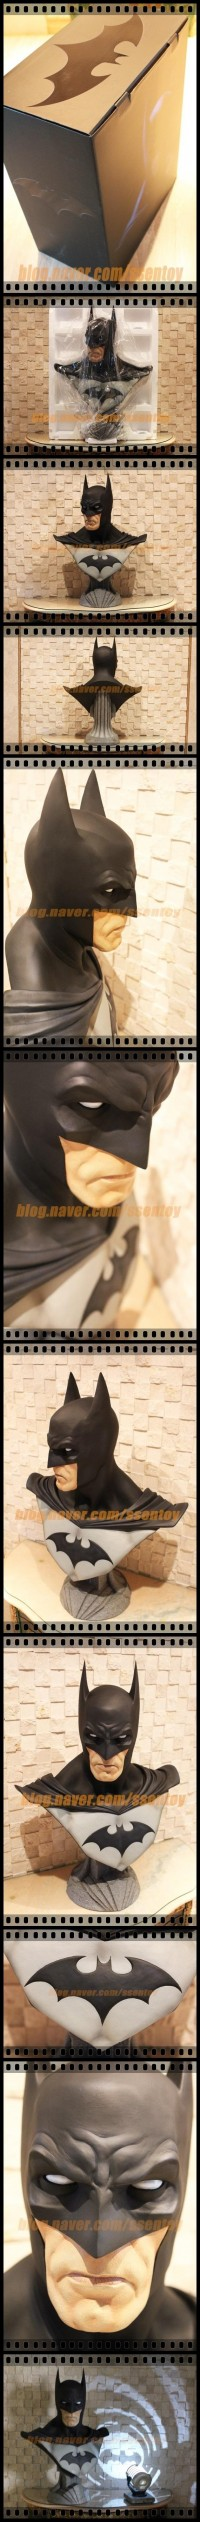 Action Figure_batman life size | The Plastic Figure World